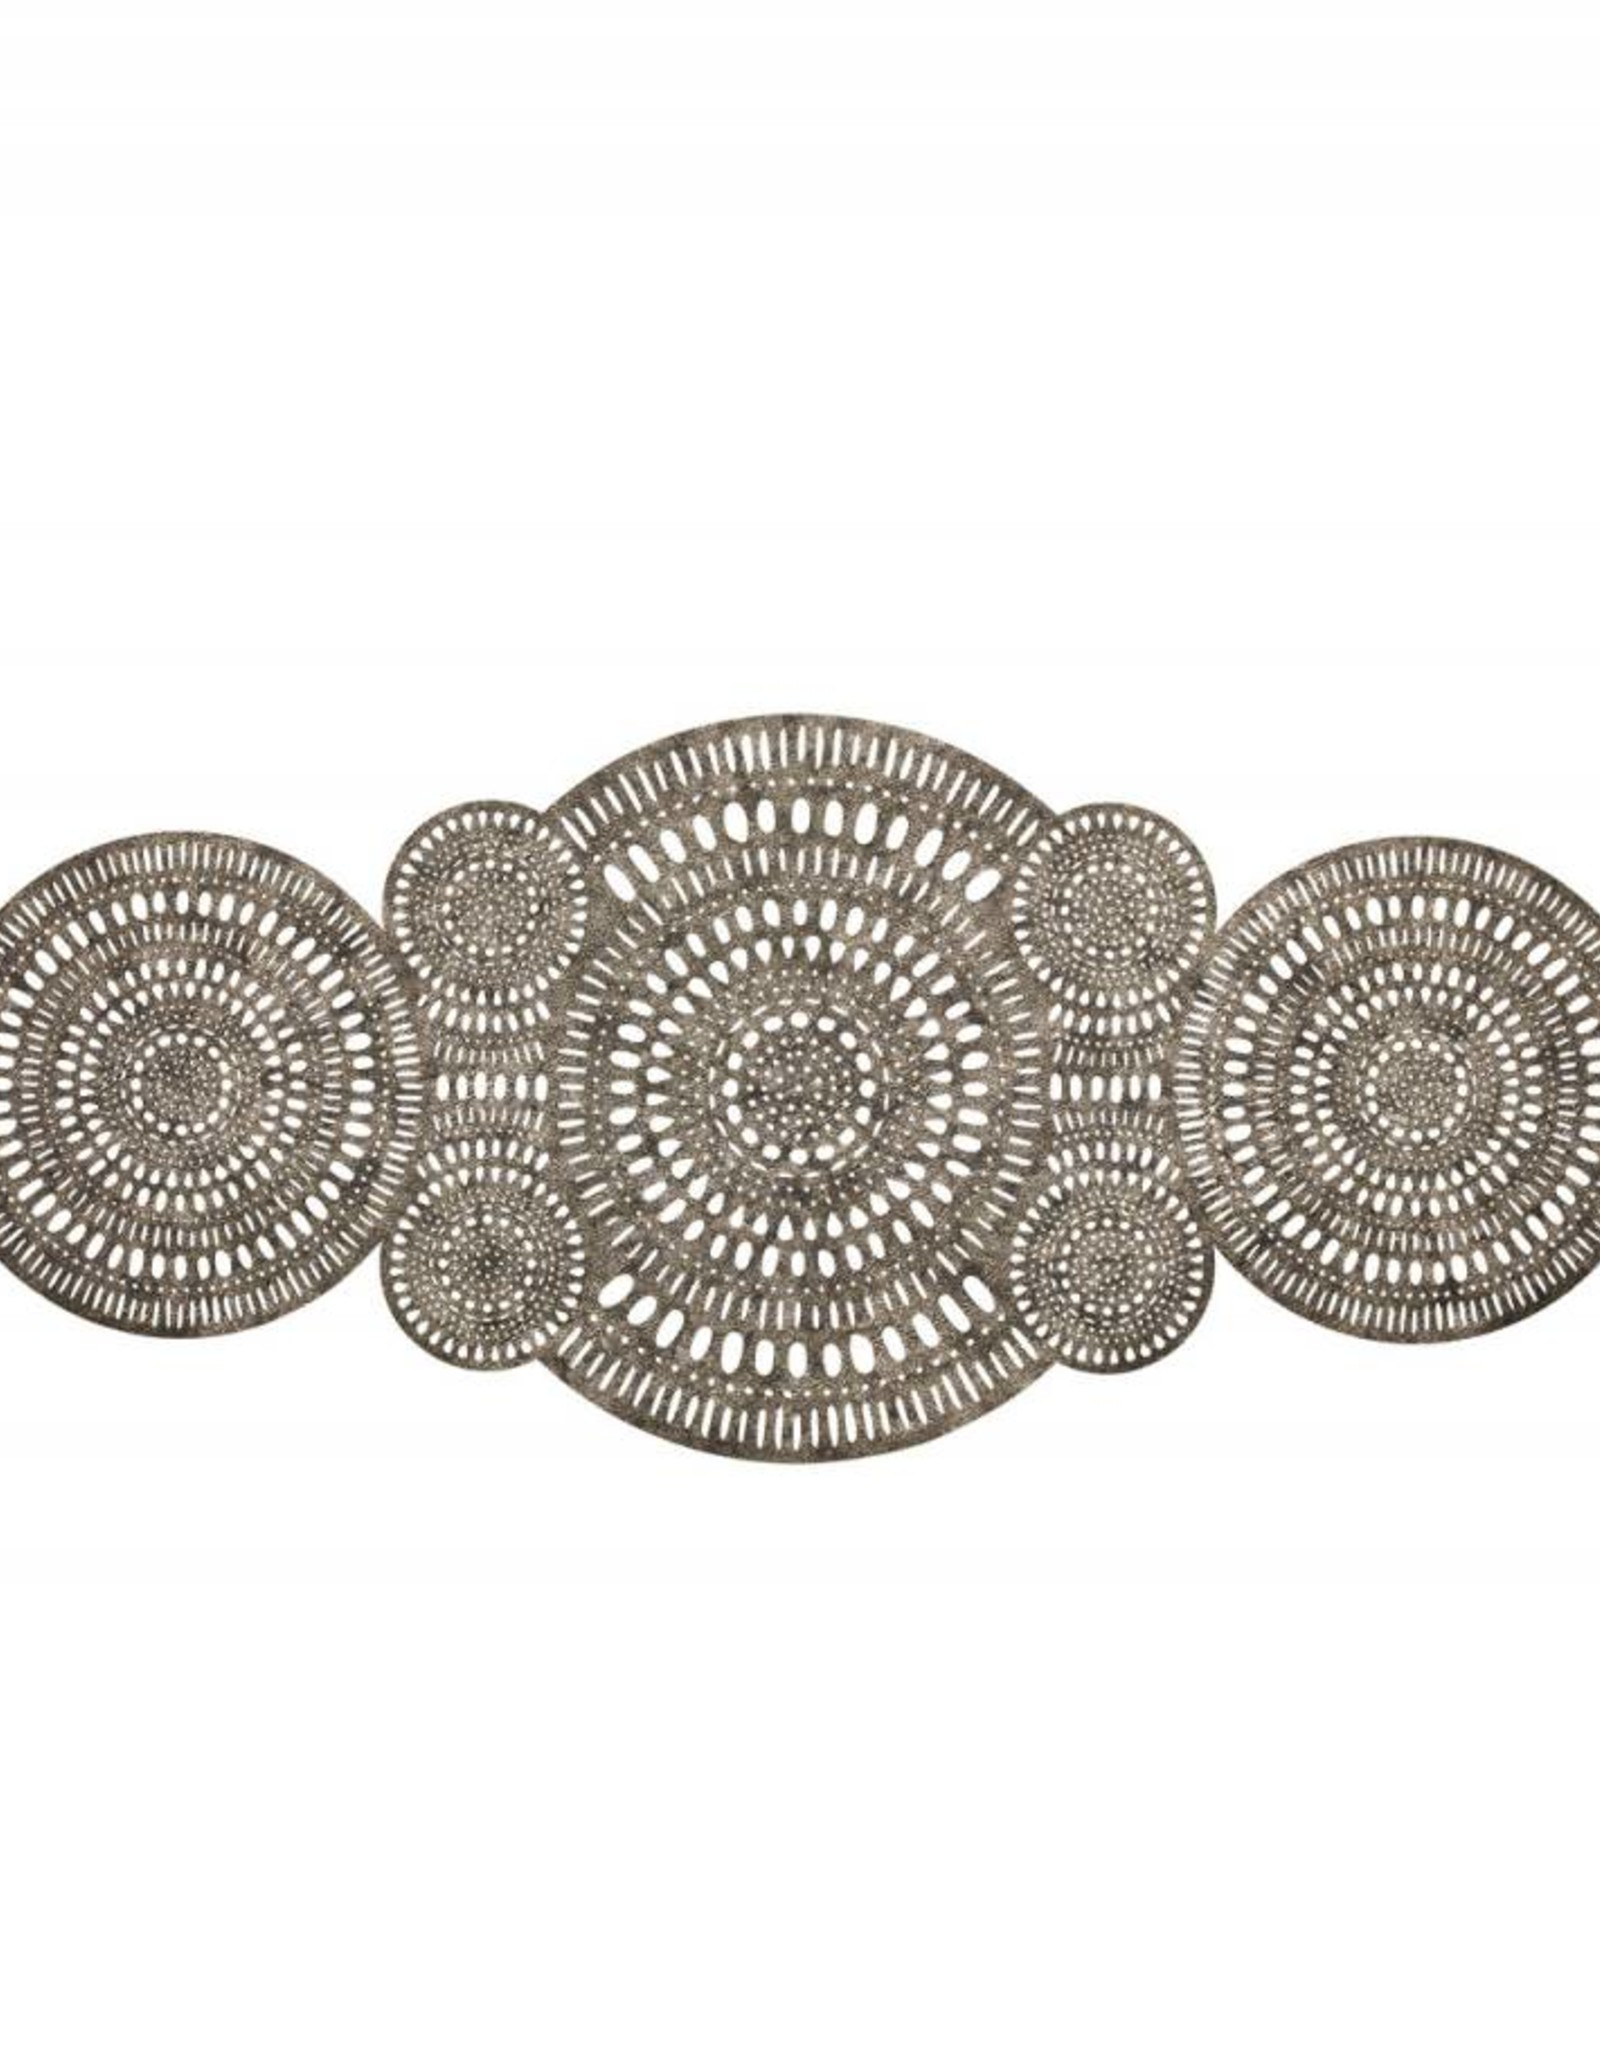 Kim Seybert Mandala Table Runner